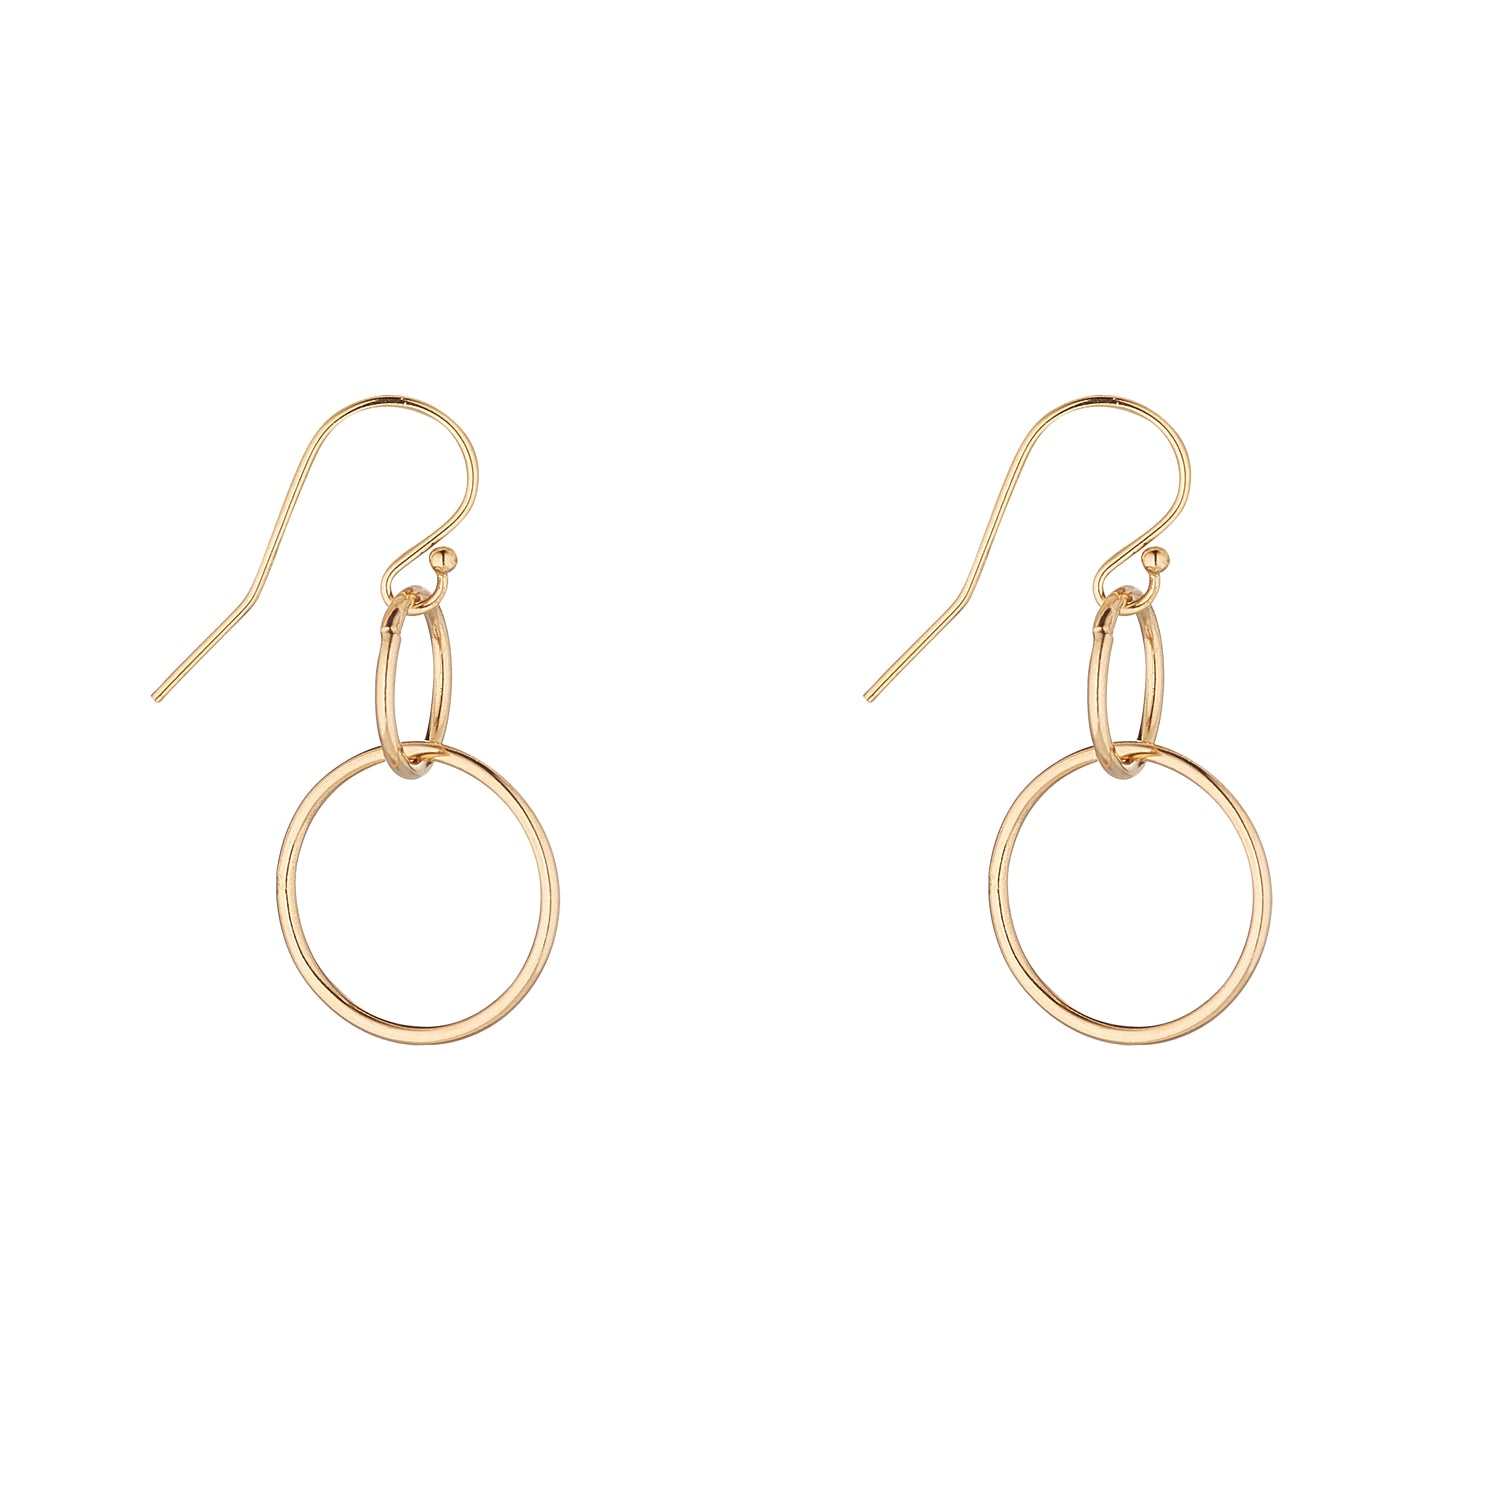 14kt Gold Filled Double Circle Earrings - MoMuse Jewellery